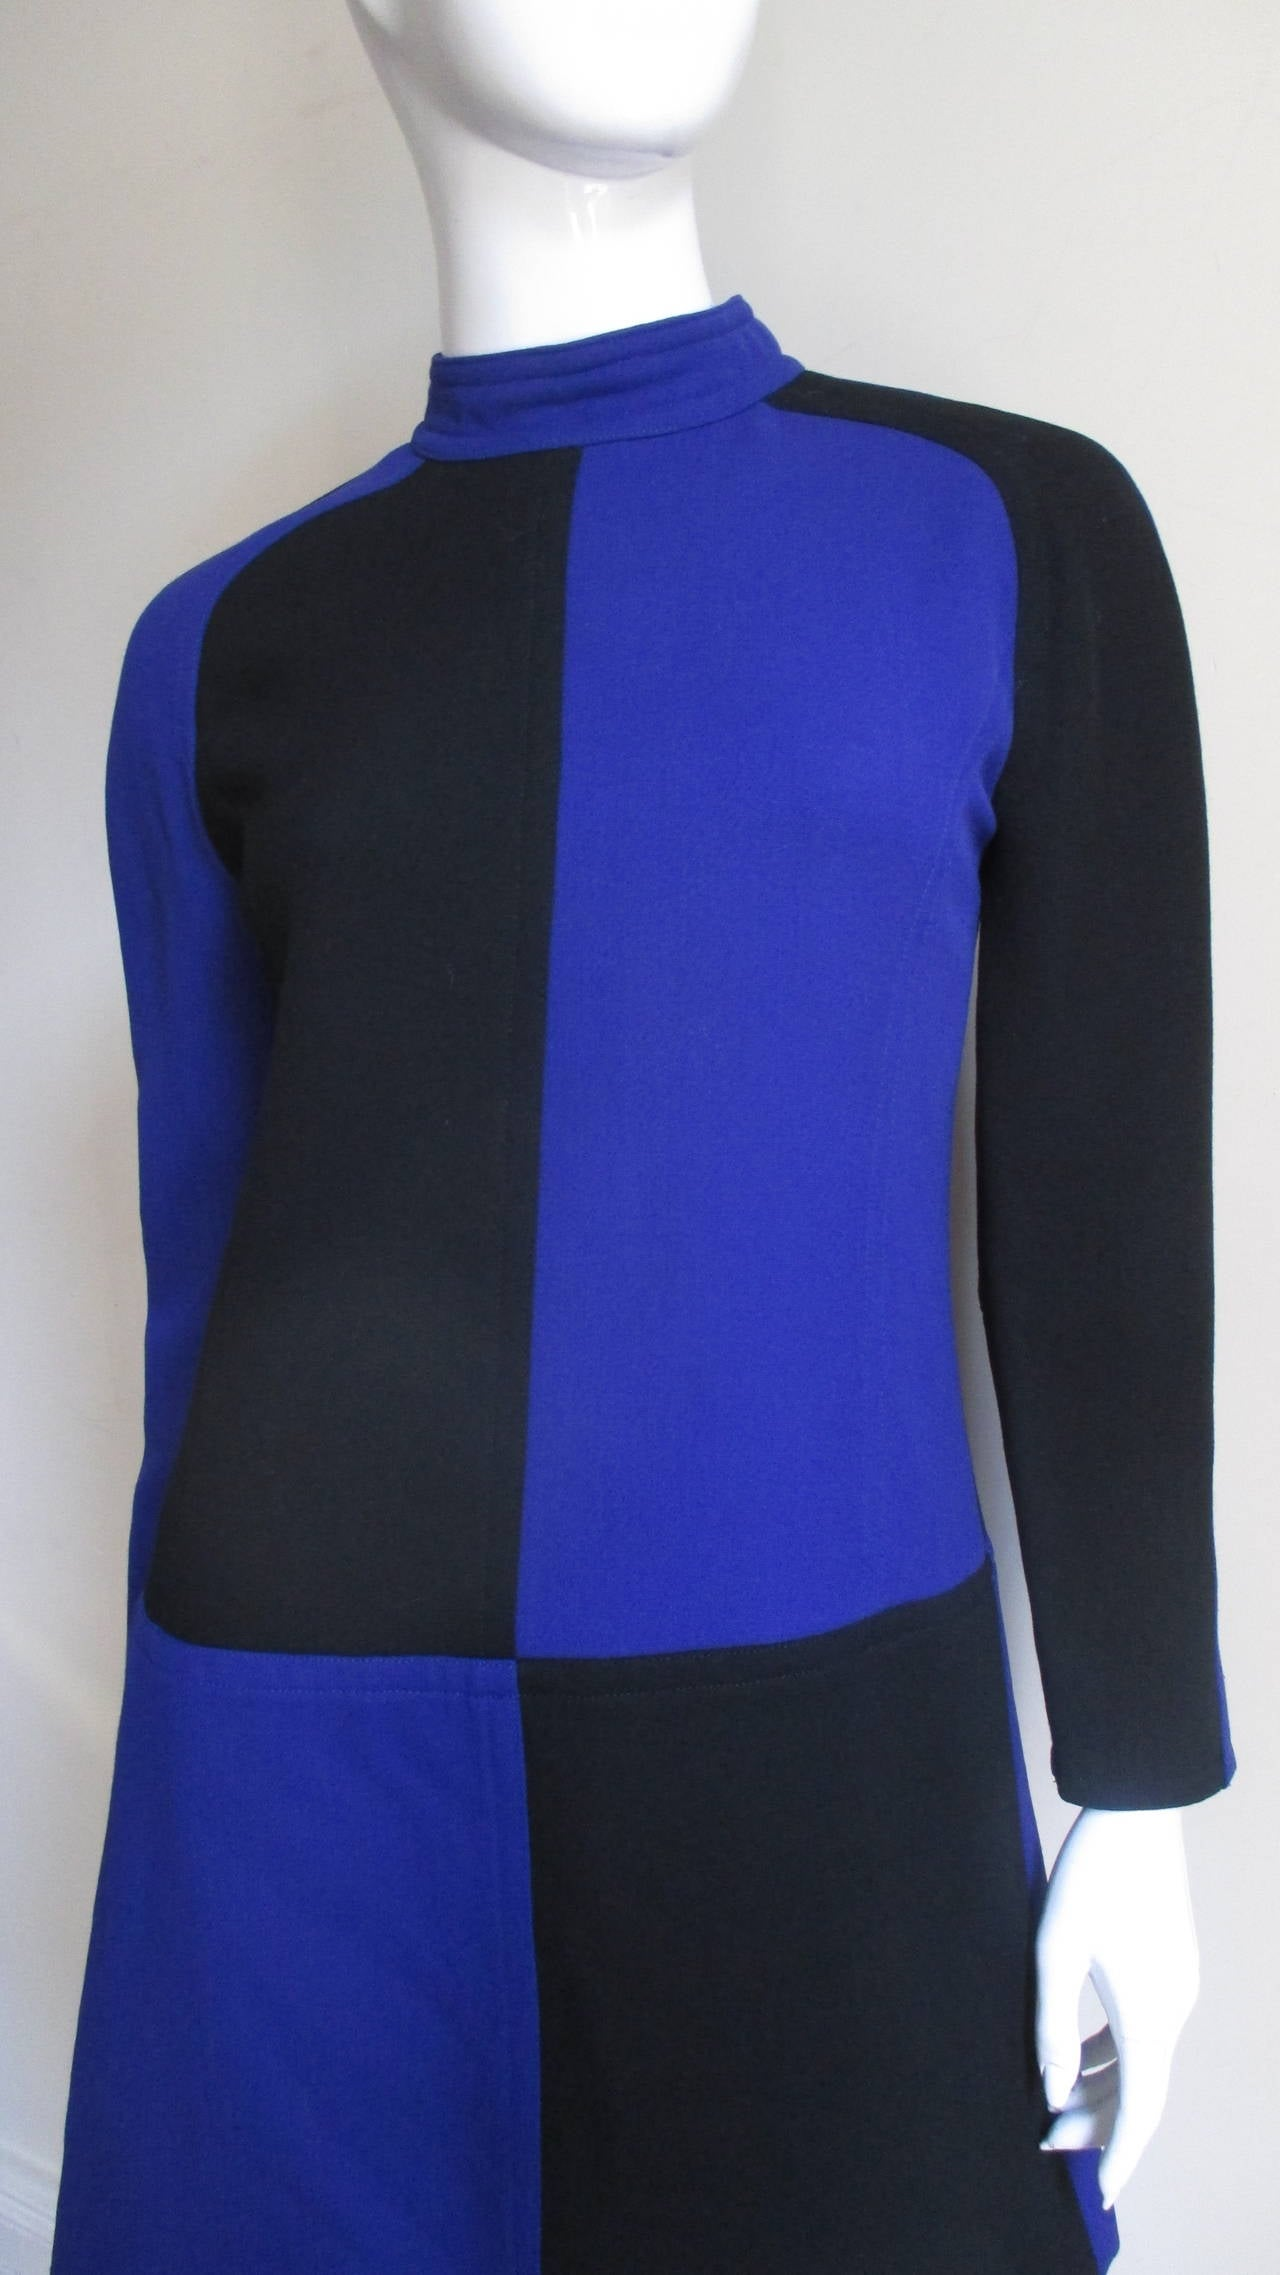 Vintage Courreges Color Block Dress 2